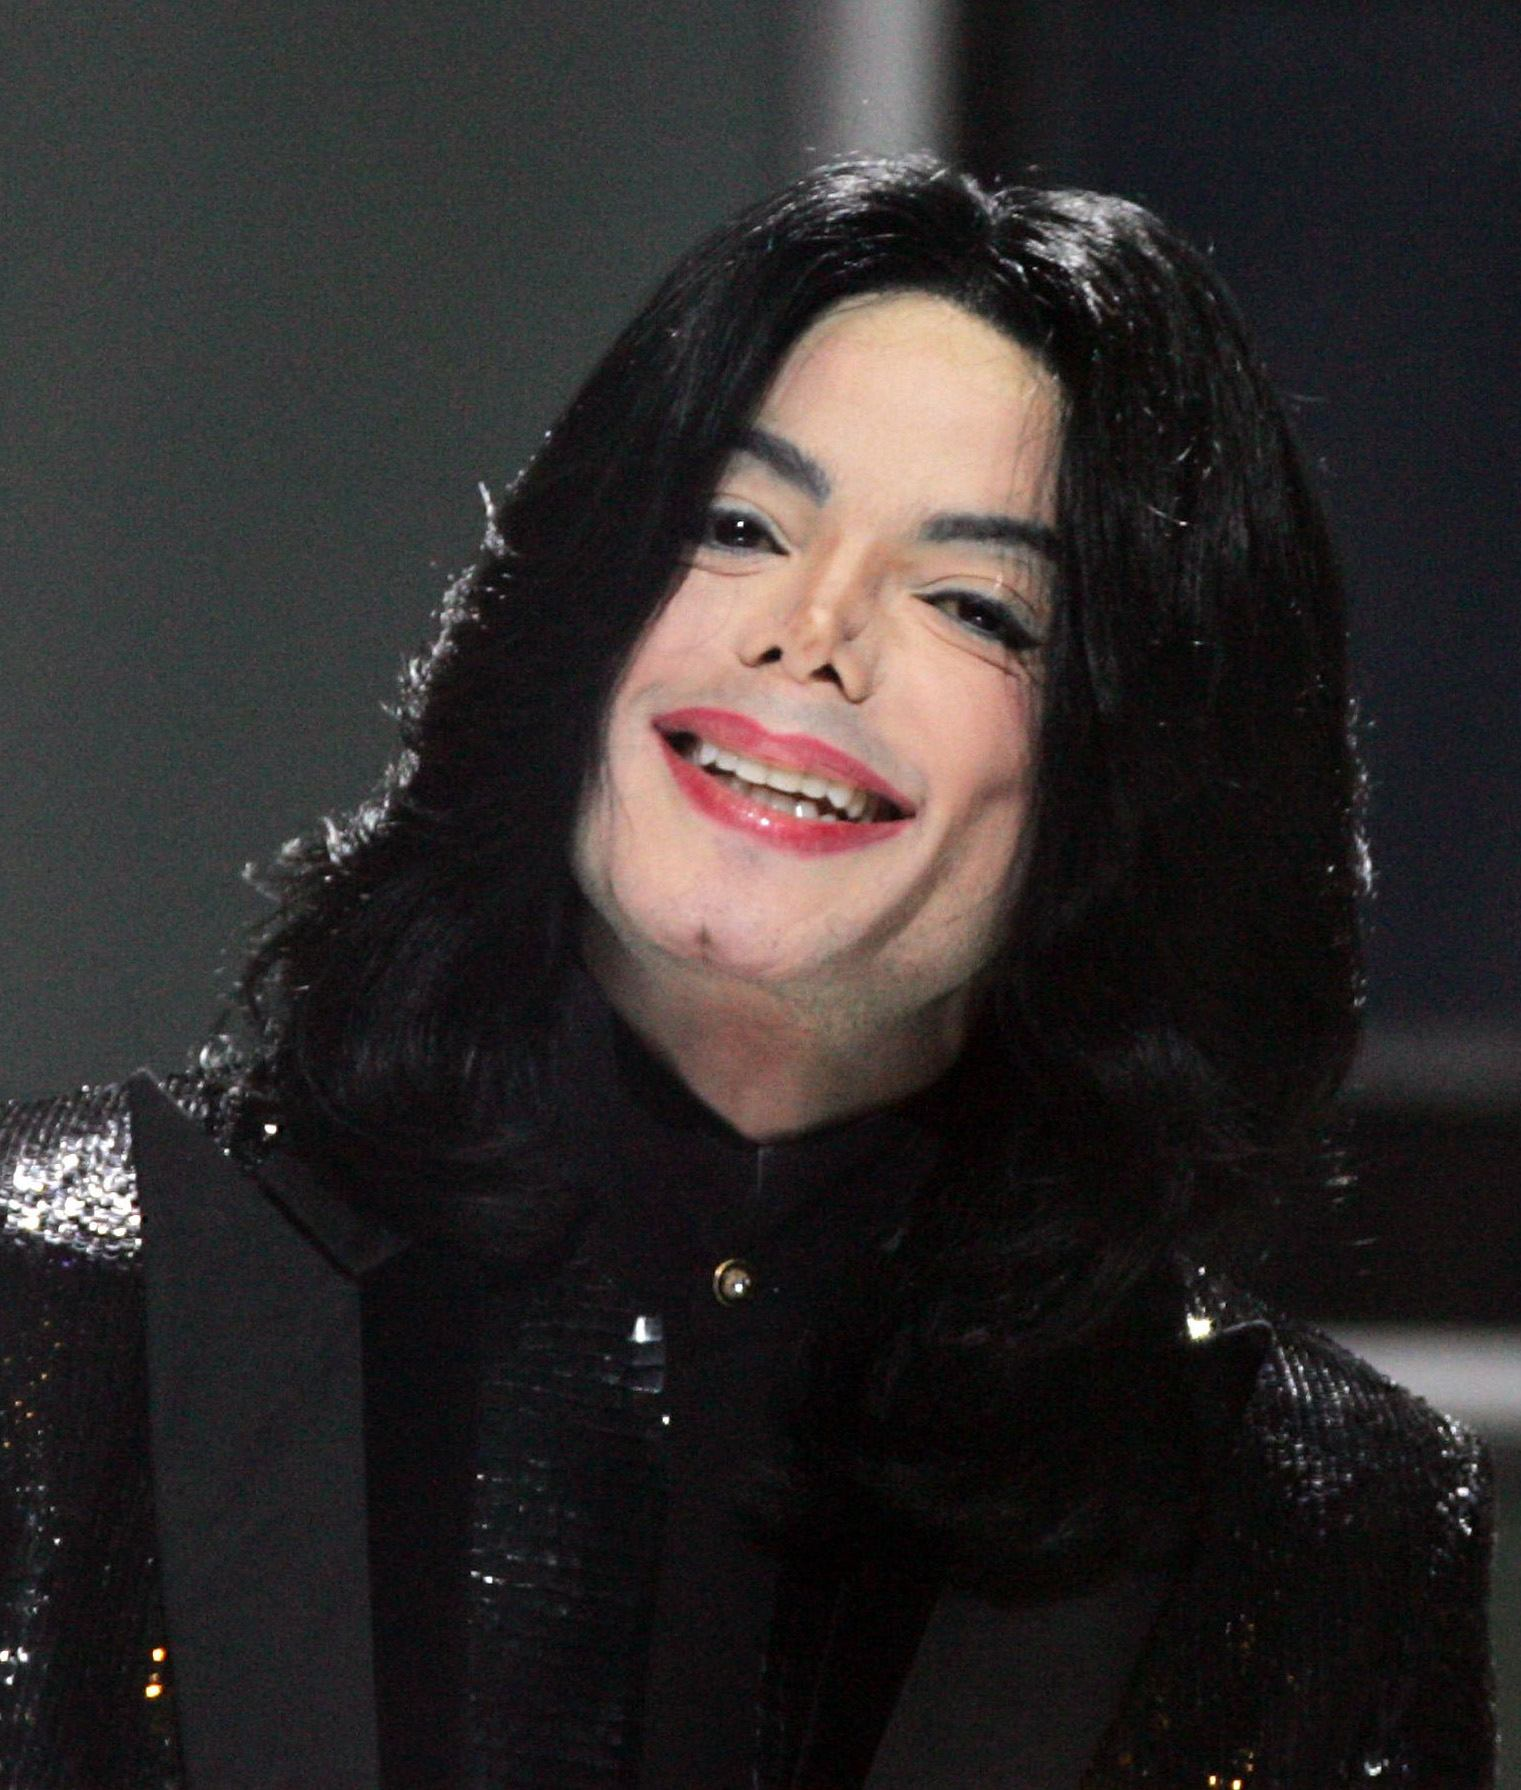 GettyImages 72571906 0 Michael Jackson's Body May Be 'Exhumed' For DNA Samples As Bombshell Claims Air